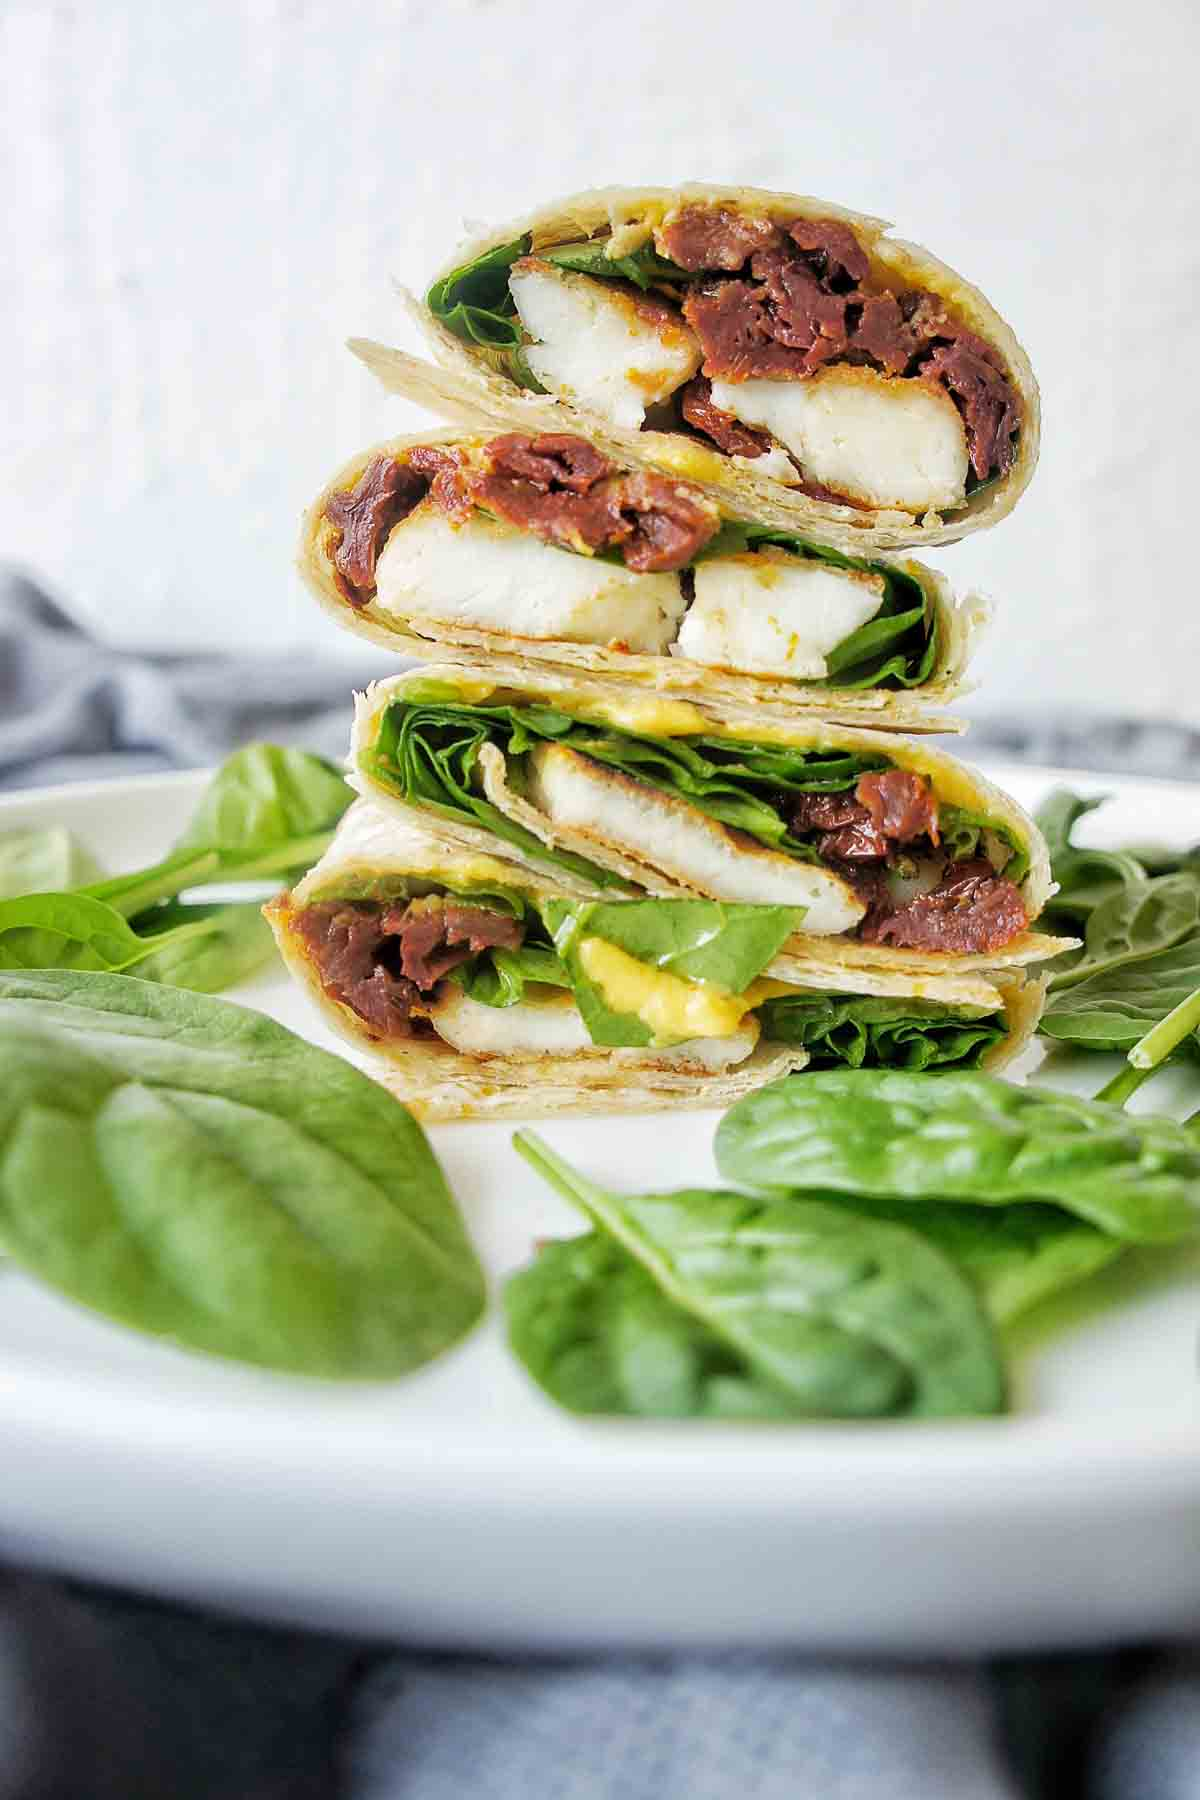 Haloumi wrap stack on a white plate with yellow sauce running down front